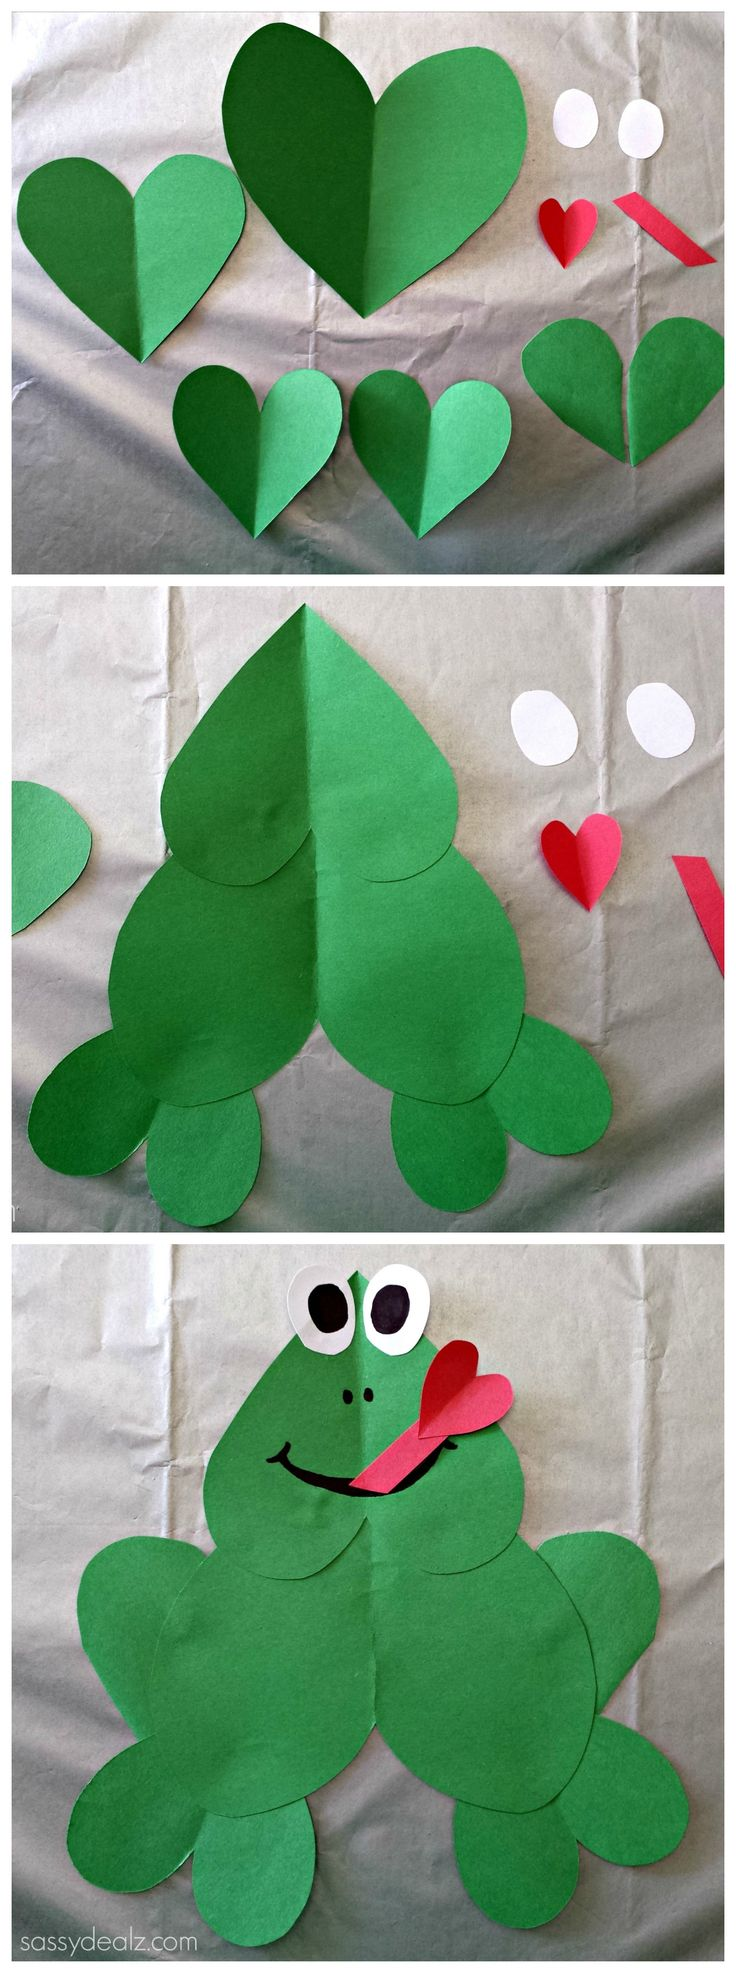 Cute Paper Heart Frog Craft For Kids! #Valentines day art project #Froggy #DIY #Hearts | Valentines Day Ideas | Pinterest | Valentine day crafts, Valentine's d…